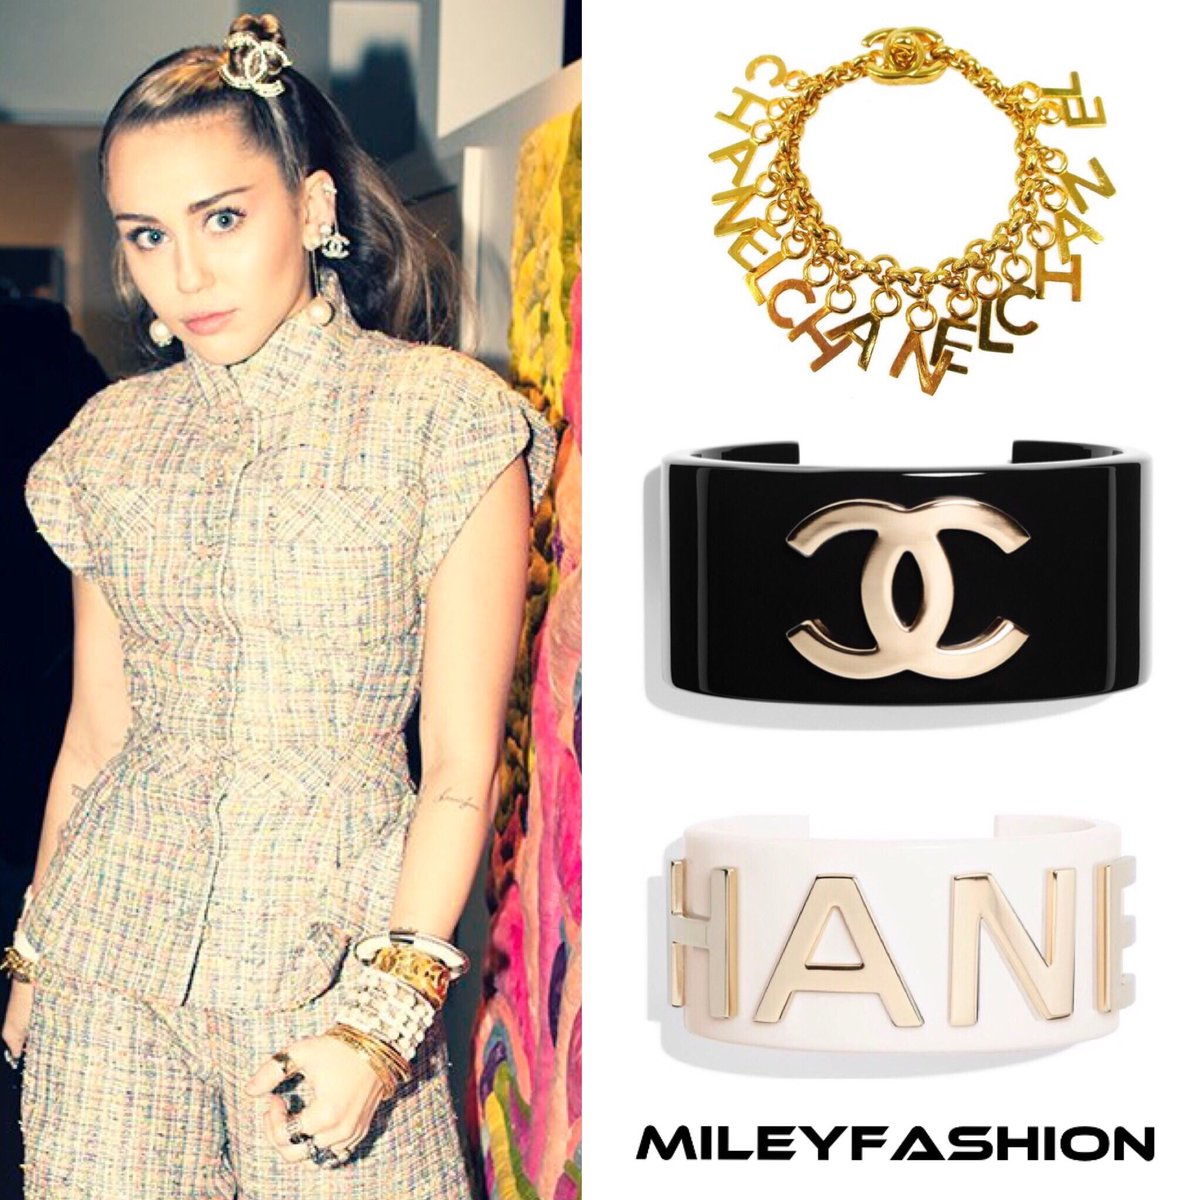 Miley Cyrus Fashion A Twitter Style Guide Mileycyrus Attended Chanel S Pre Oscars Dinner In Beverly Hills Last Night Wearing An Assorted Variety Of Jewelry By Chanel Including Vintage Chanel Interlock Charm Bracelet